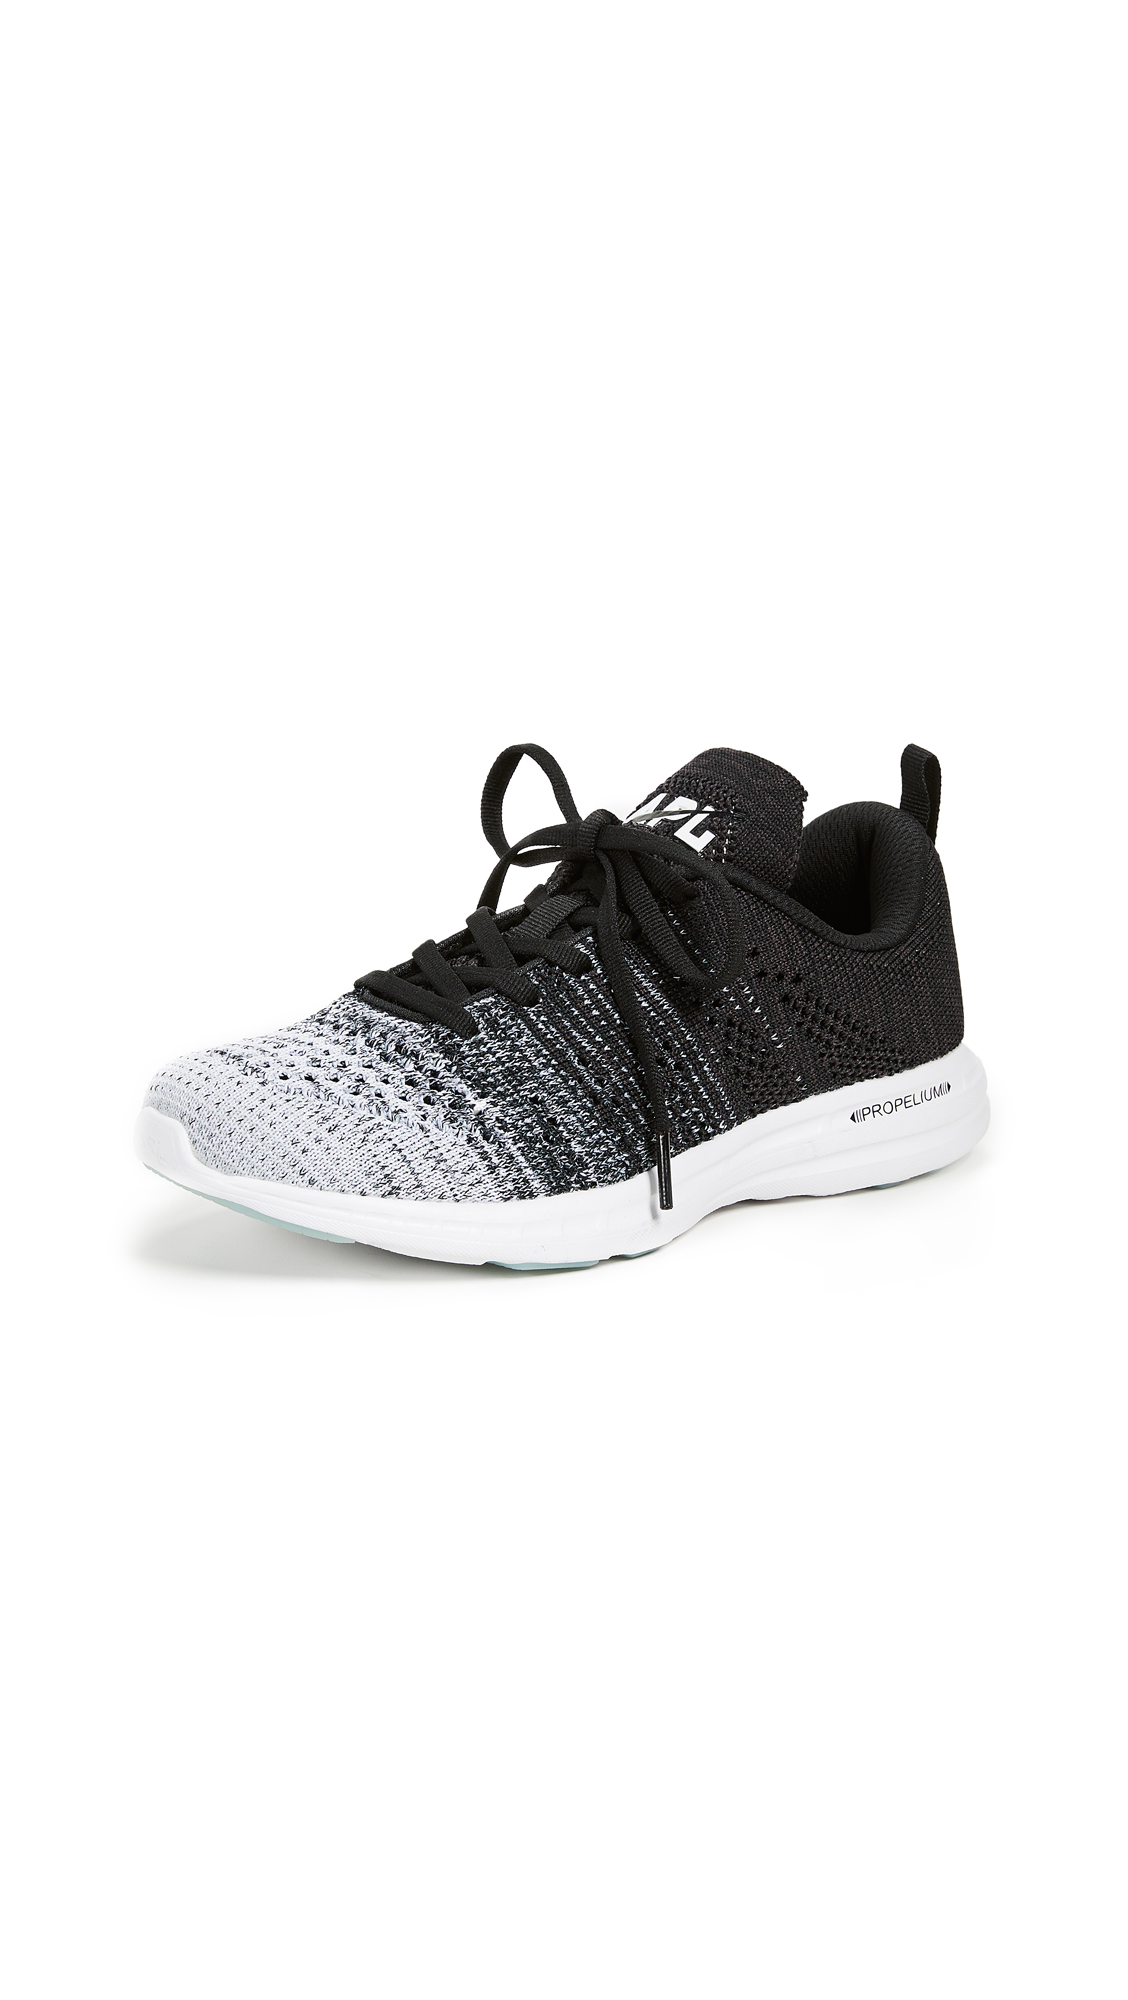 APL: Athletic Propulsion Labs TechLoom Pro Sneakers - White/Grey/Black Melange